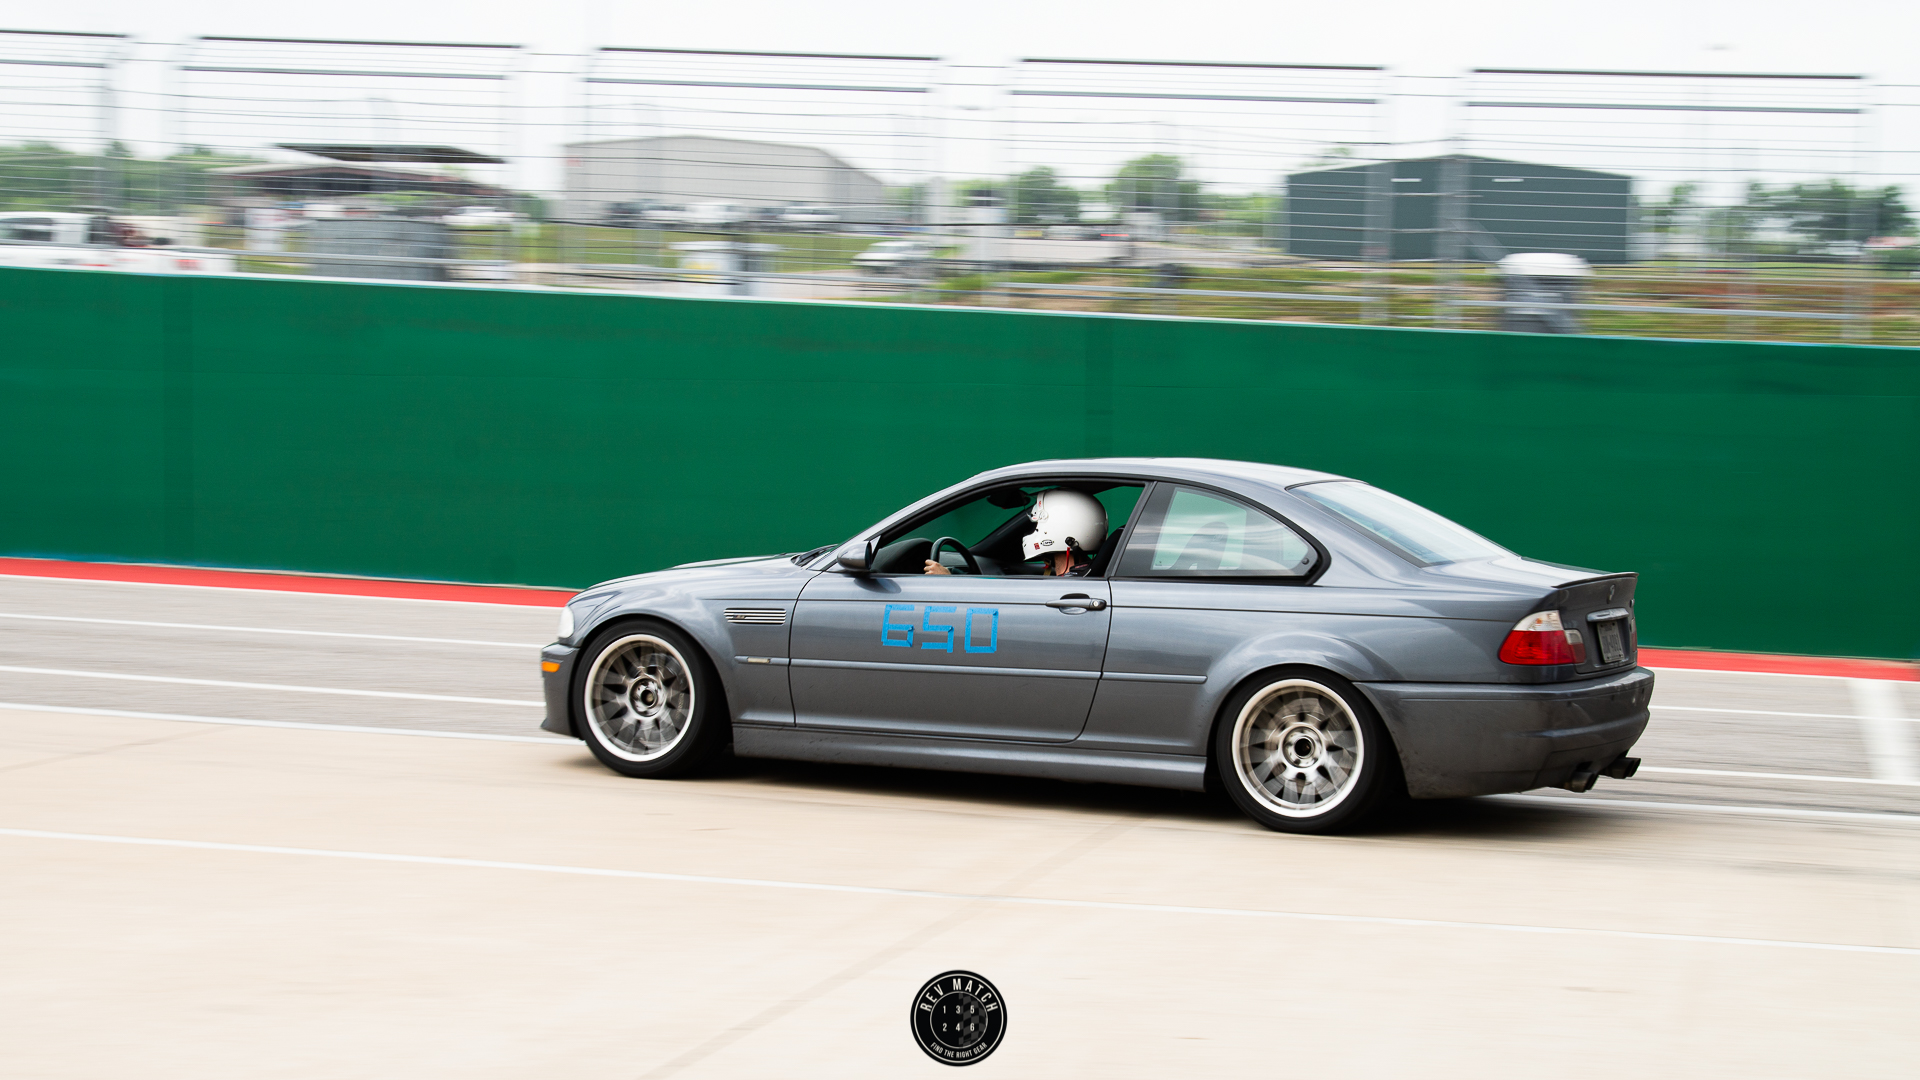 Edge Addict COTA May 2019 Rev Match Media-78.jpg